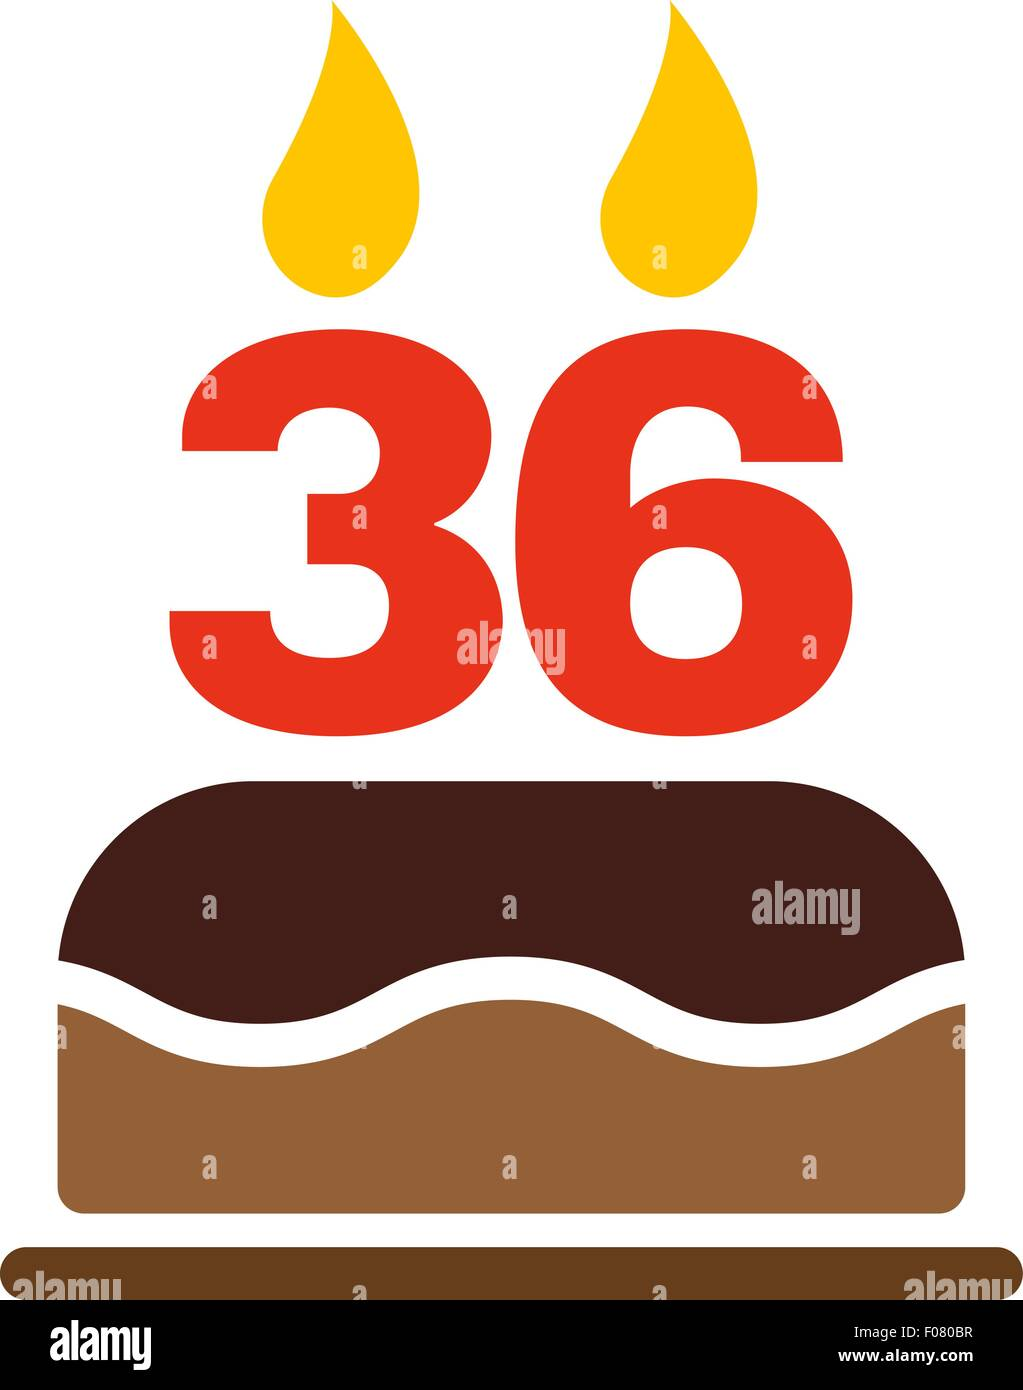 The birthday cake with candles in the form of number 36 icon Stock